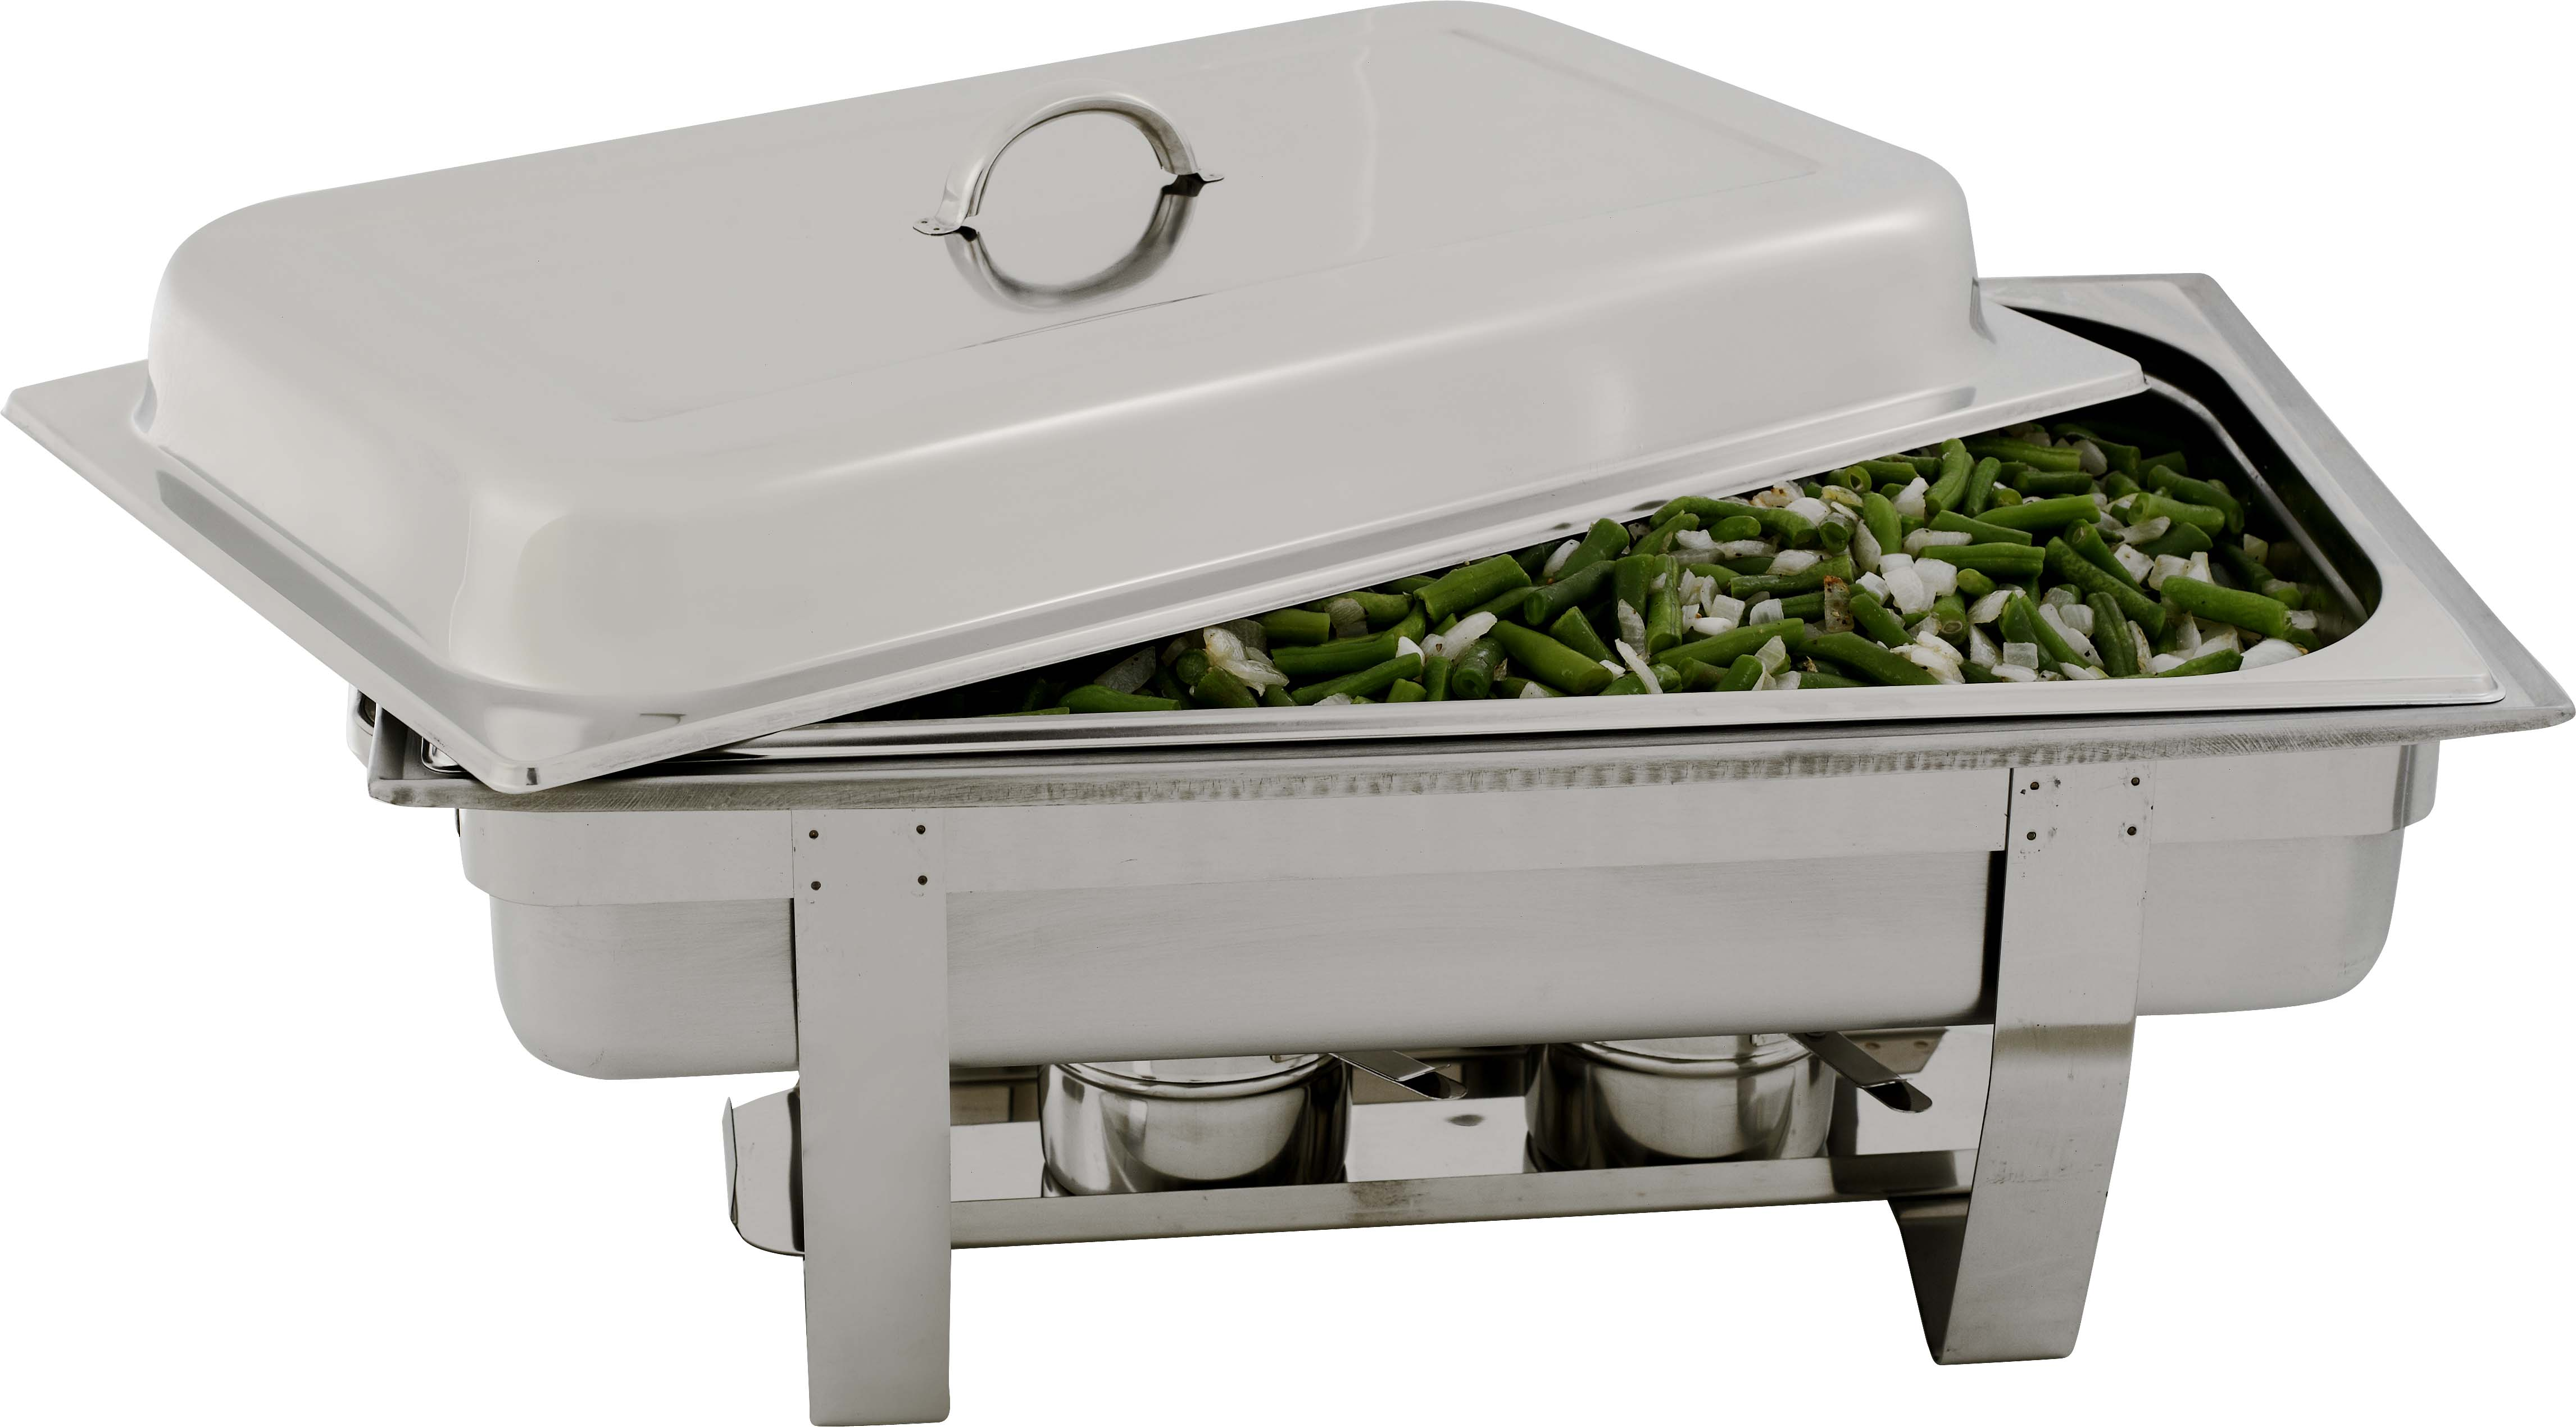 CHAFING DISH STAINLESS STEEL-POLISHED (RECTANGULAR) 7.5Lt